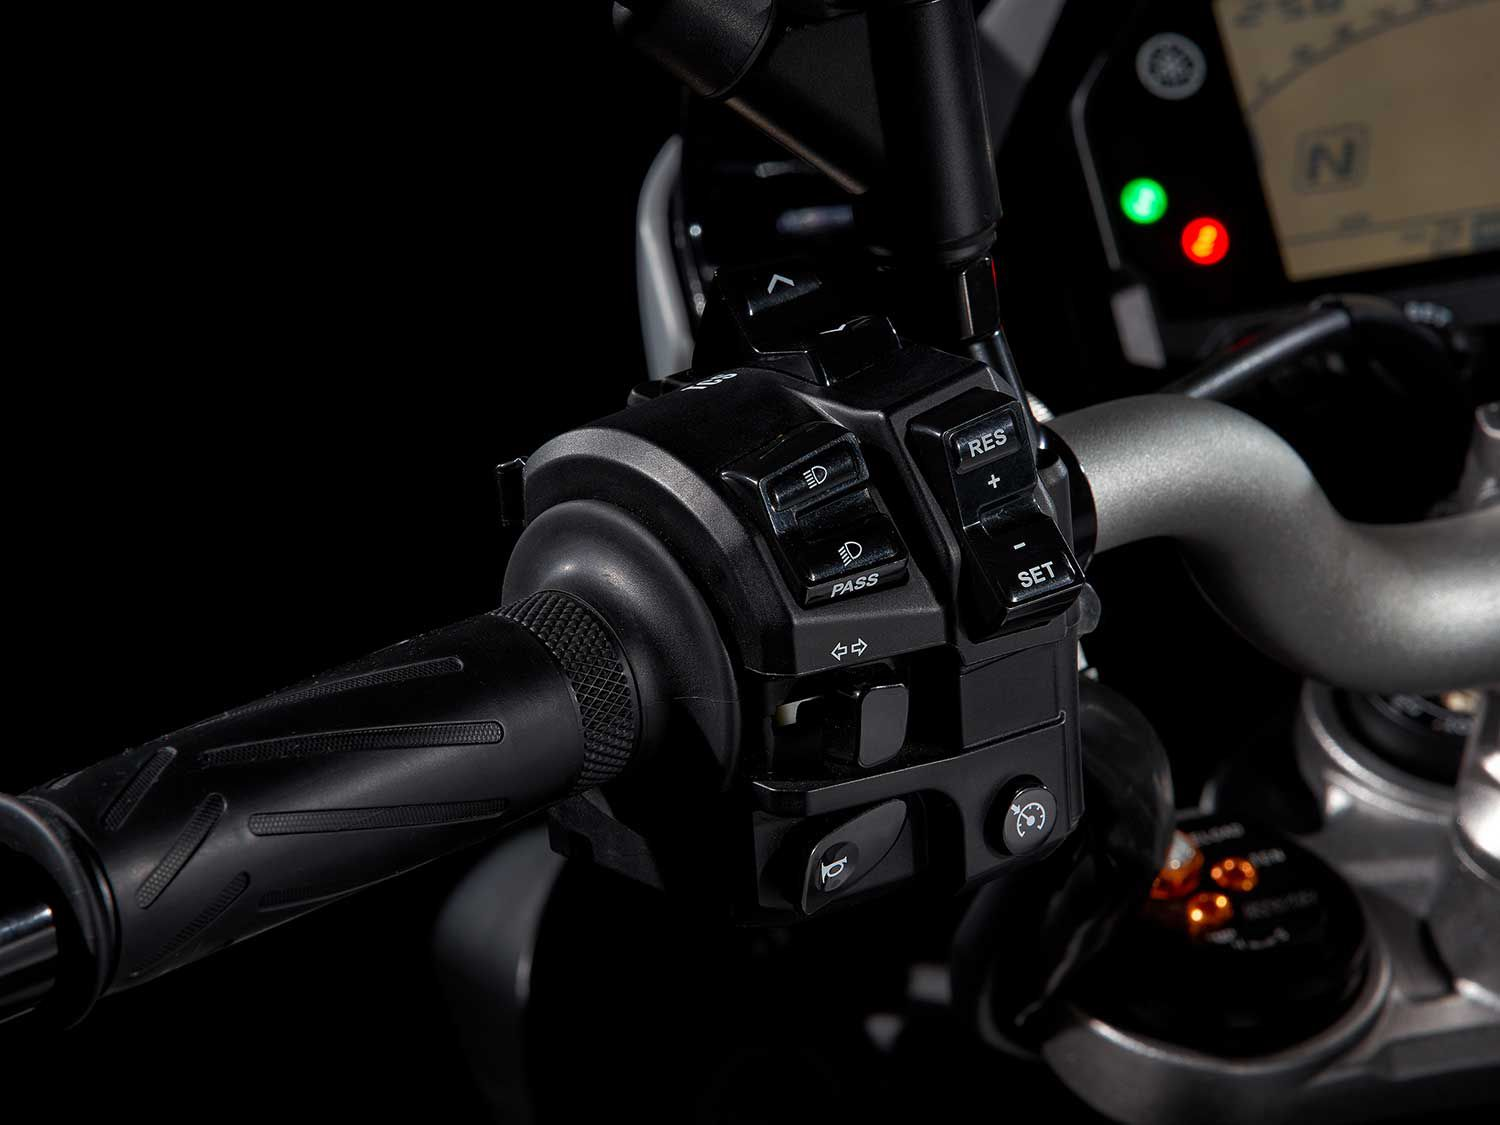 All the selector switches are conveniently located on the left handlebar for easy access to the D-Mode and other functions.